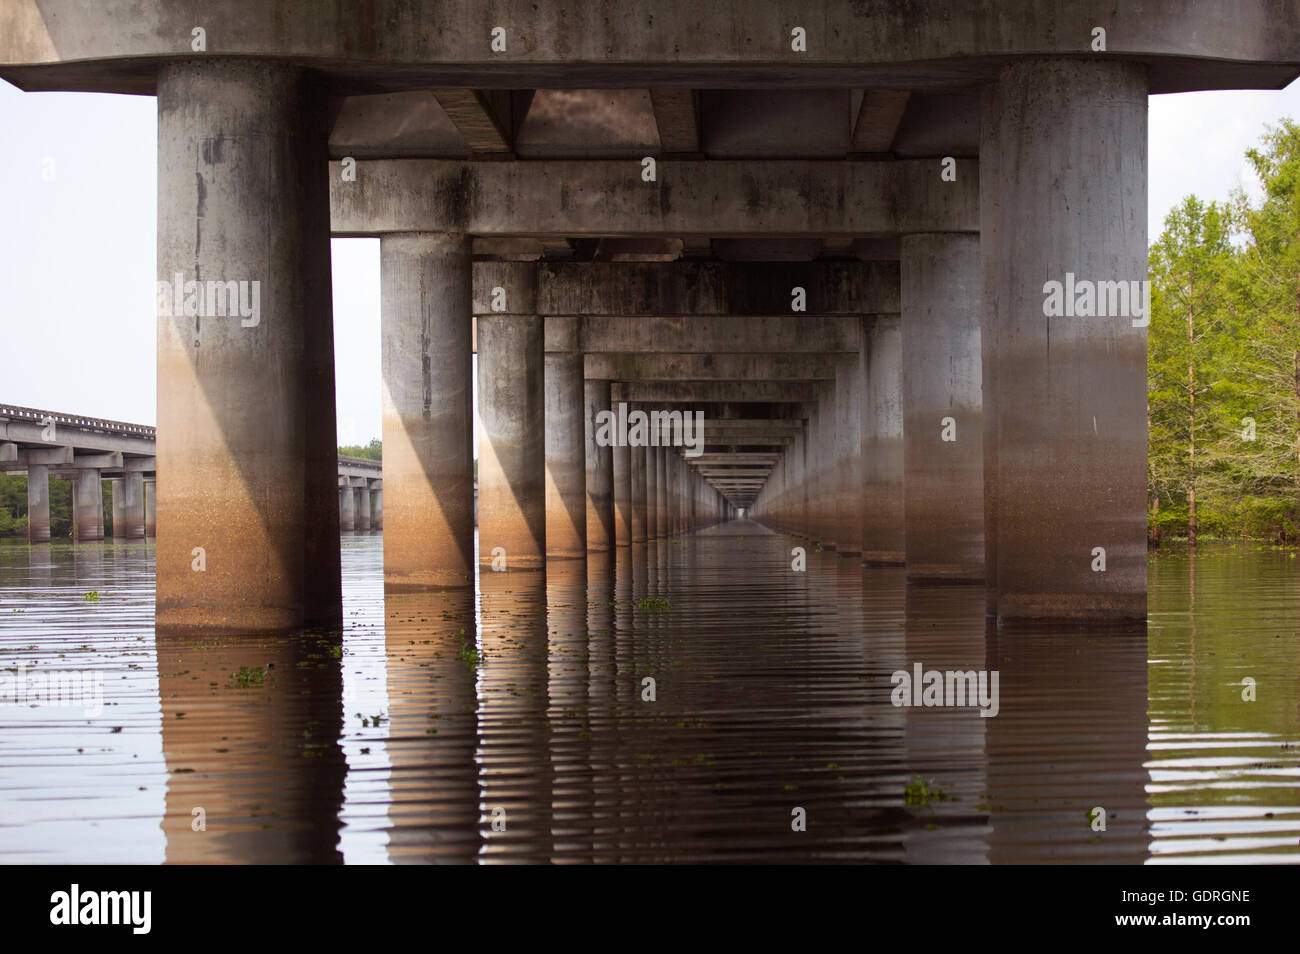 Atchafalaya swamp freeway, an 18.2 mile bridge crossing the wetland on Interstate 10 (I-10) highway - Stock Image